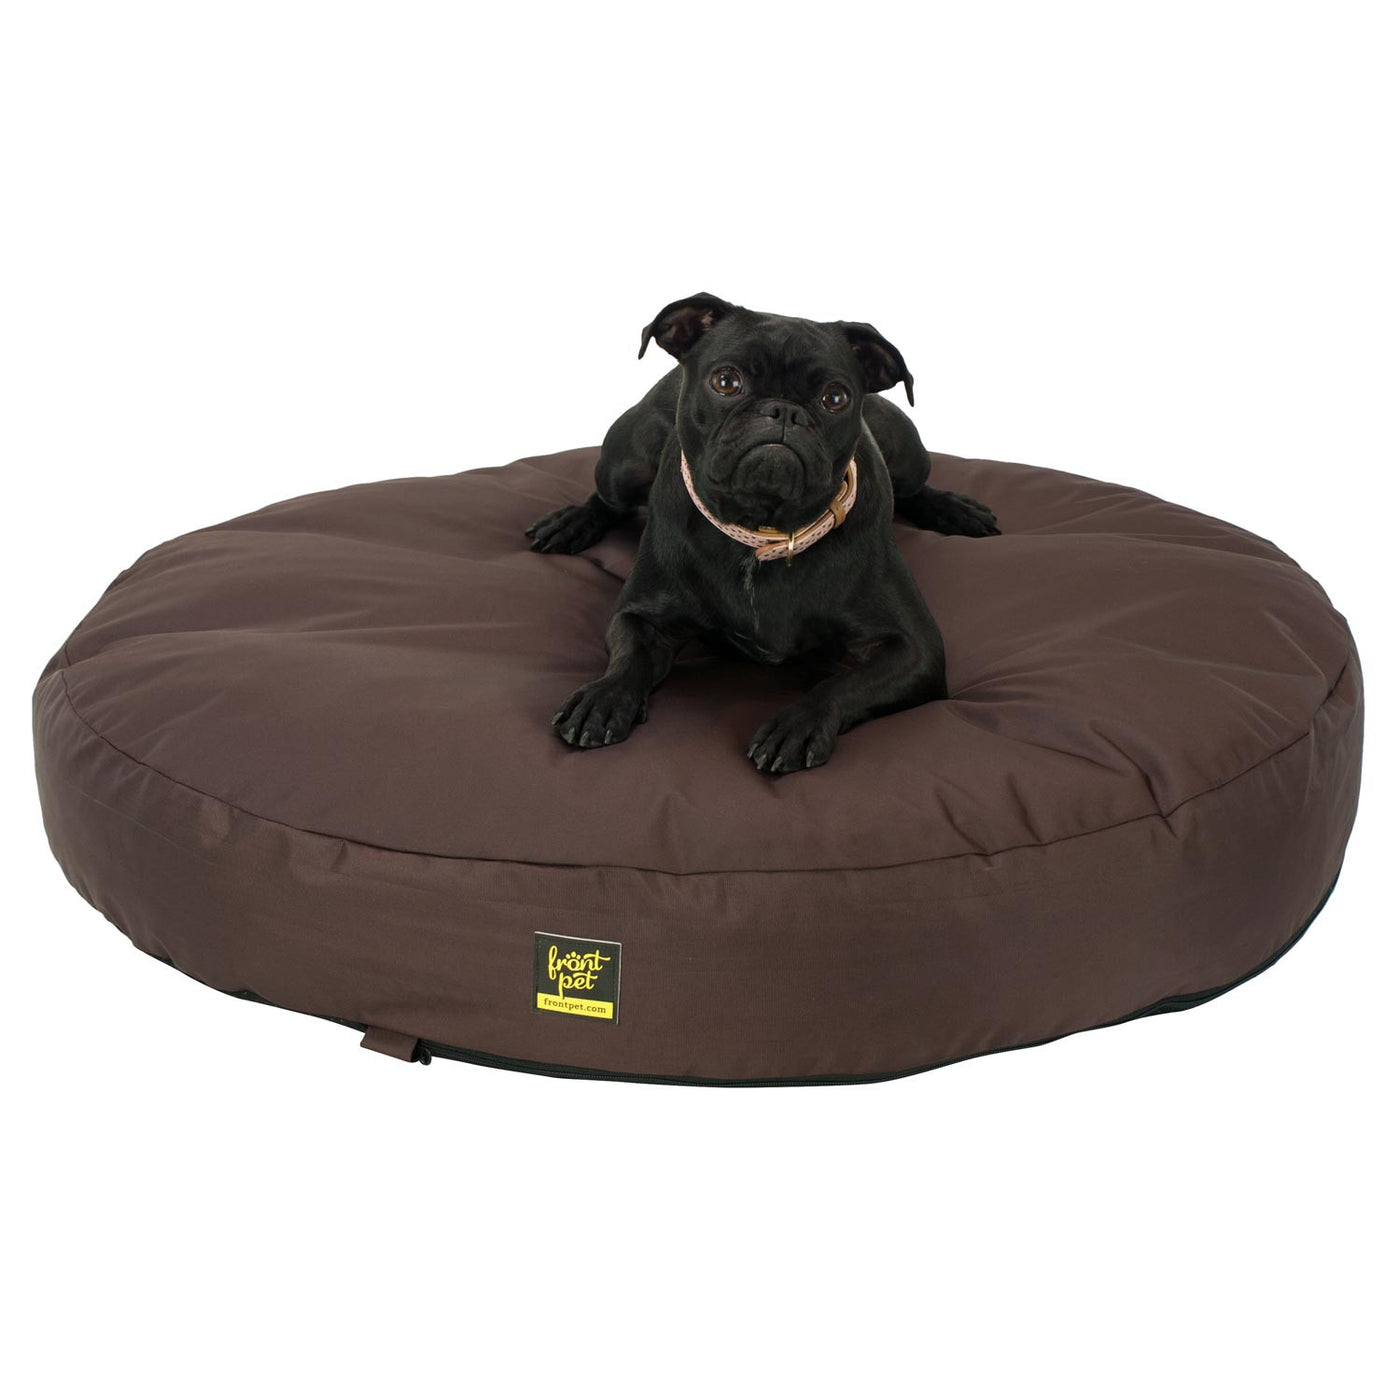 Chew proof dog bed round memory foam dog bed frontpetcom for Dog proof mattress cover